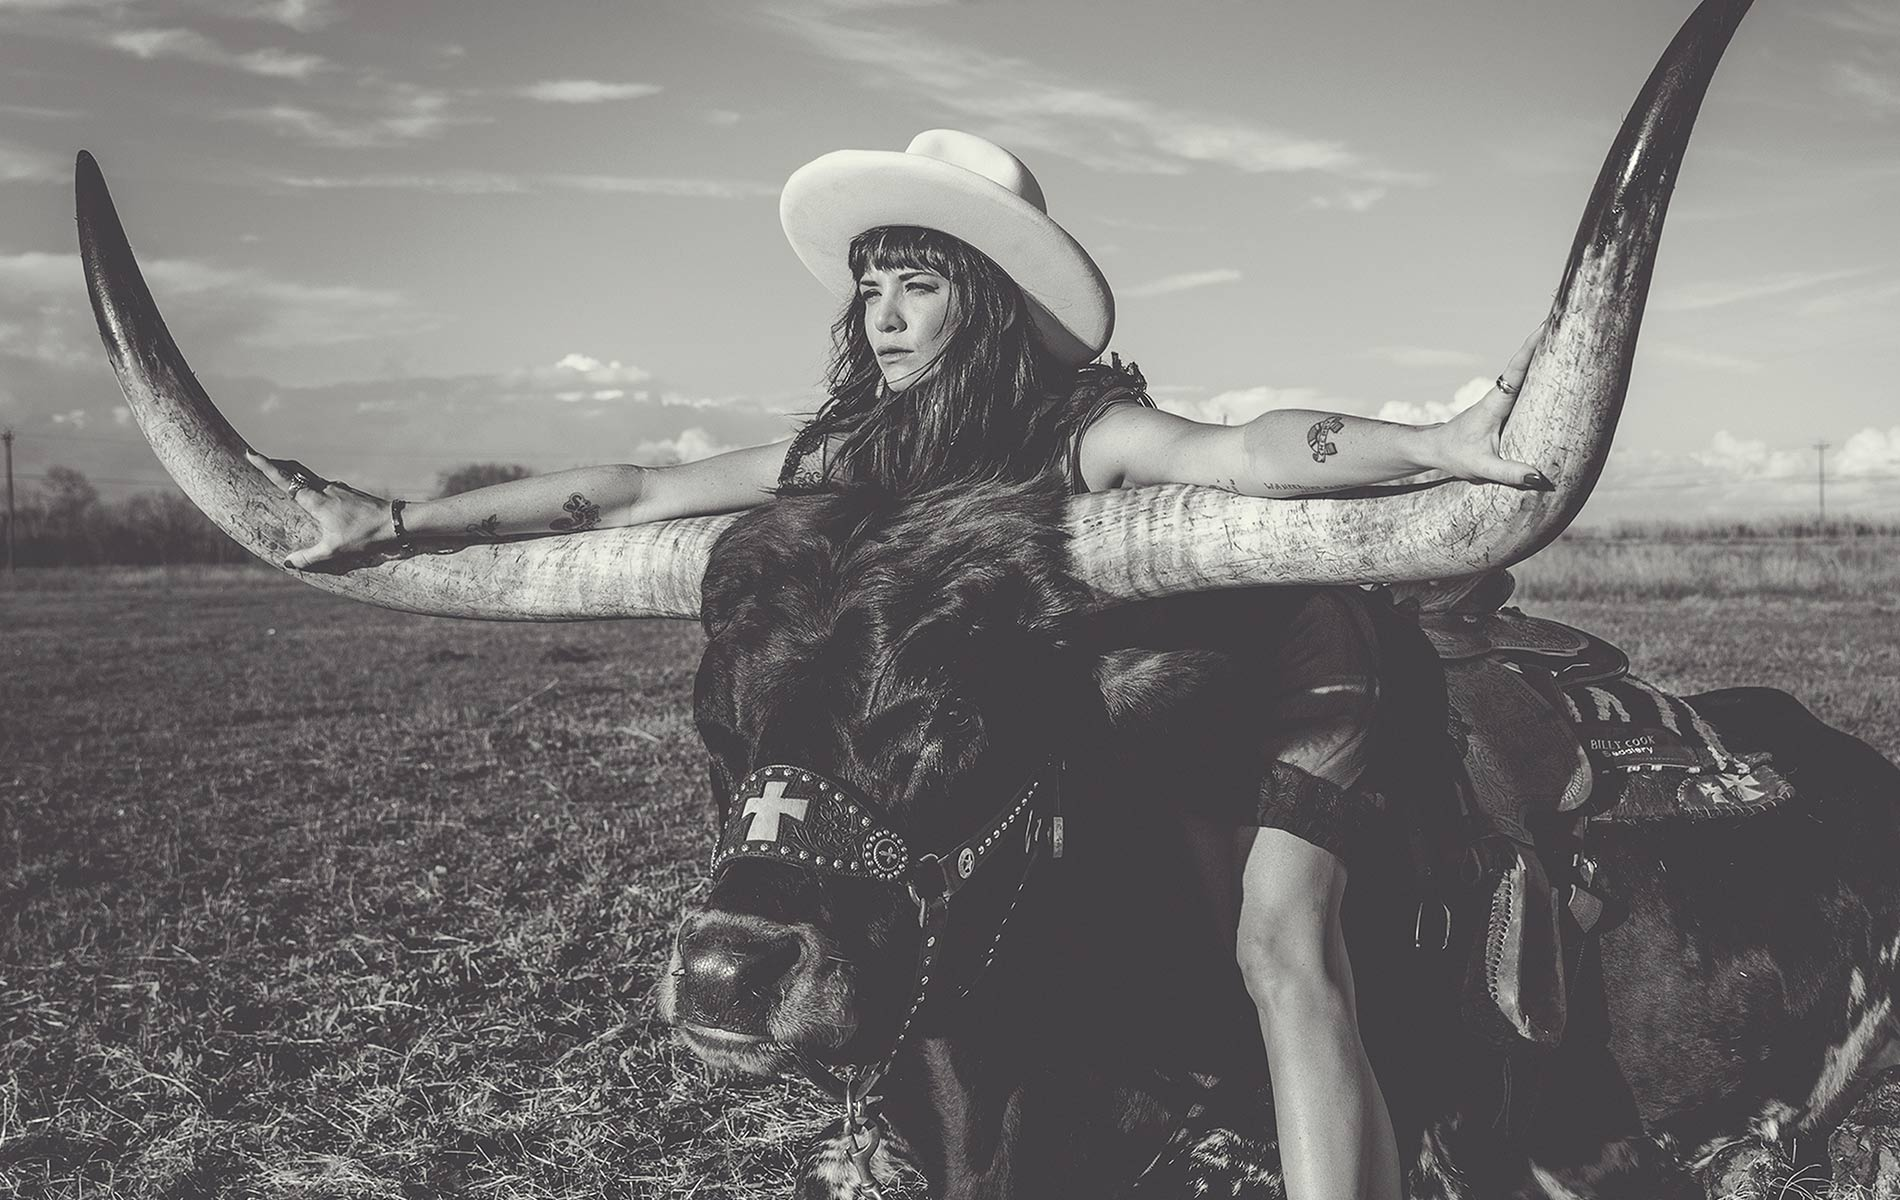 Nikki Lane brings an edgy, rock 'n' roll vibe to the country music genre. Photo by Eden Tyler